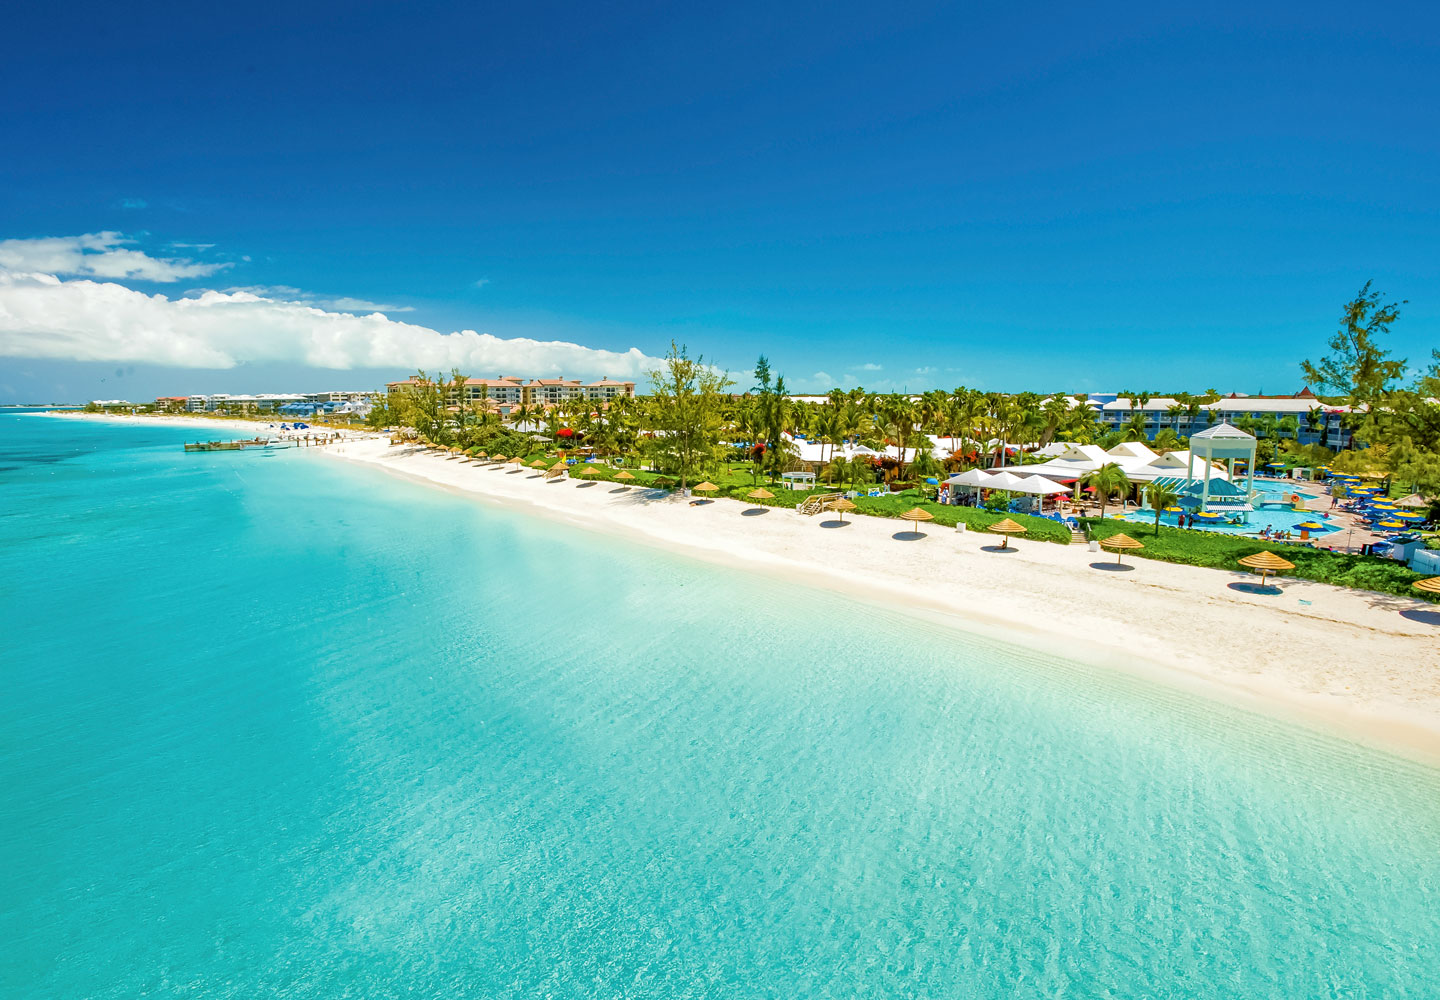 Beaches Turks Amp Caicos Resort Villages Amp Spa Travel By Bob